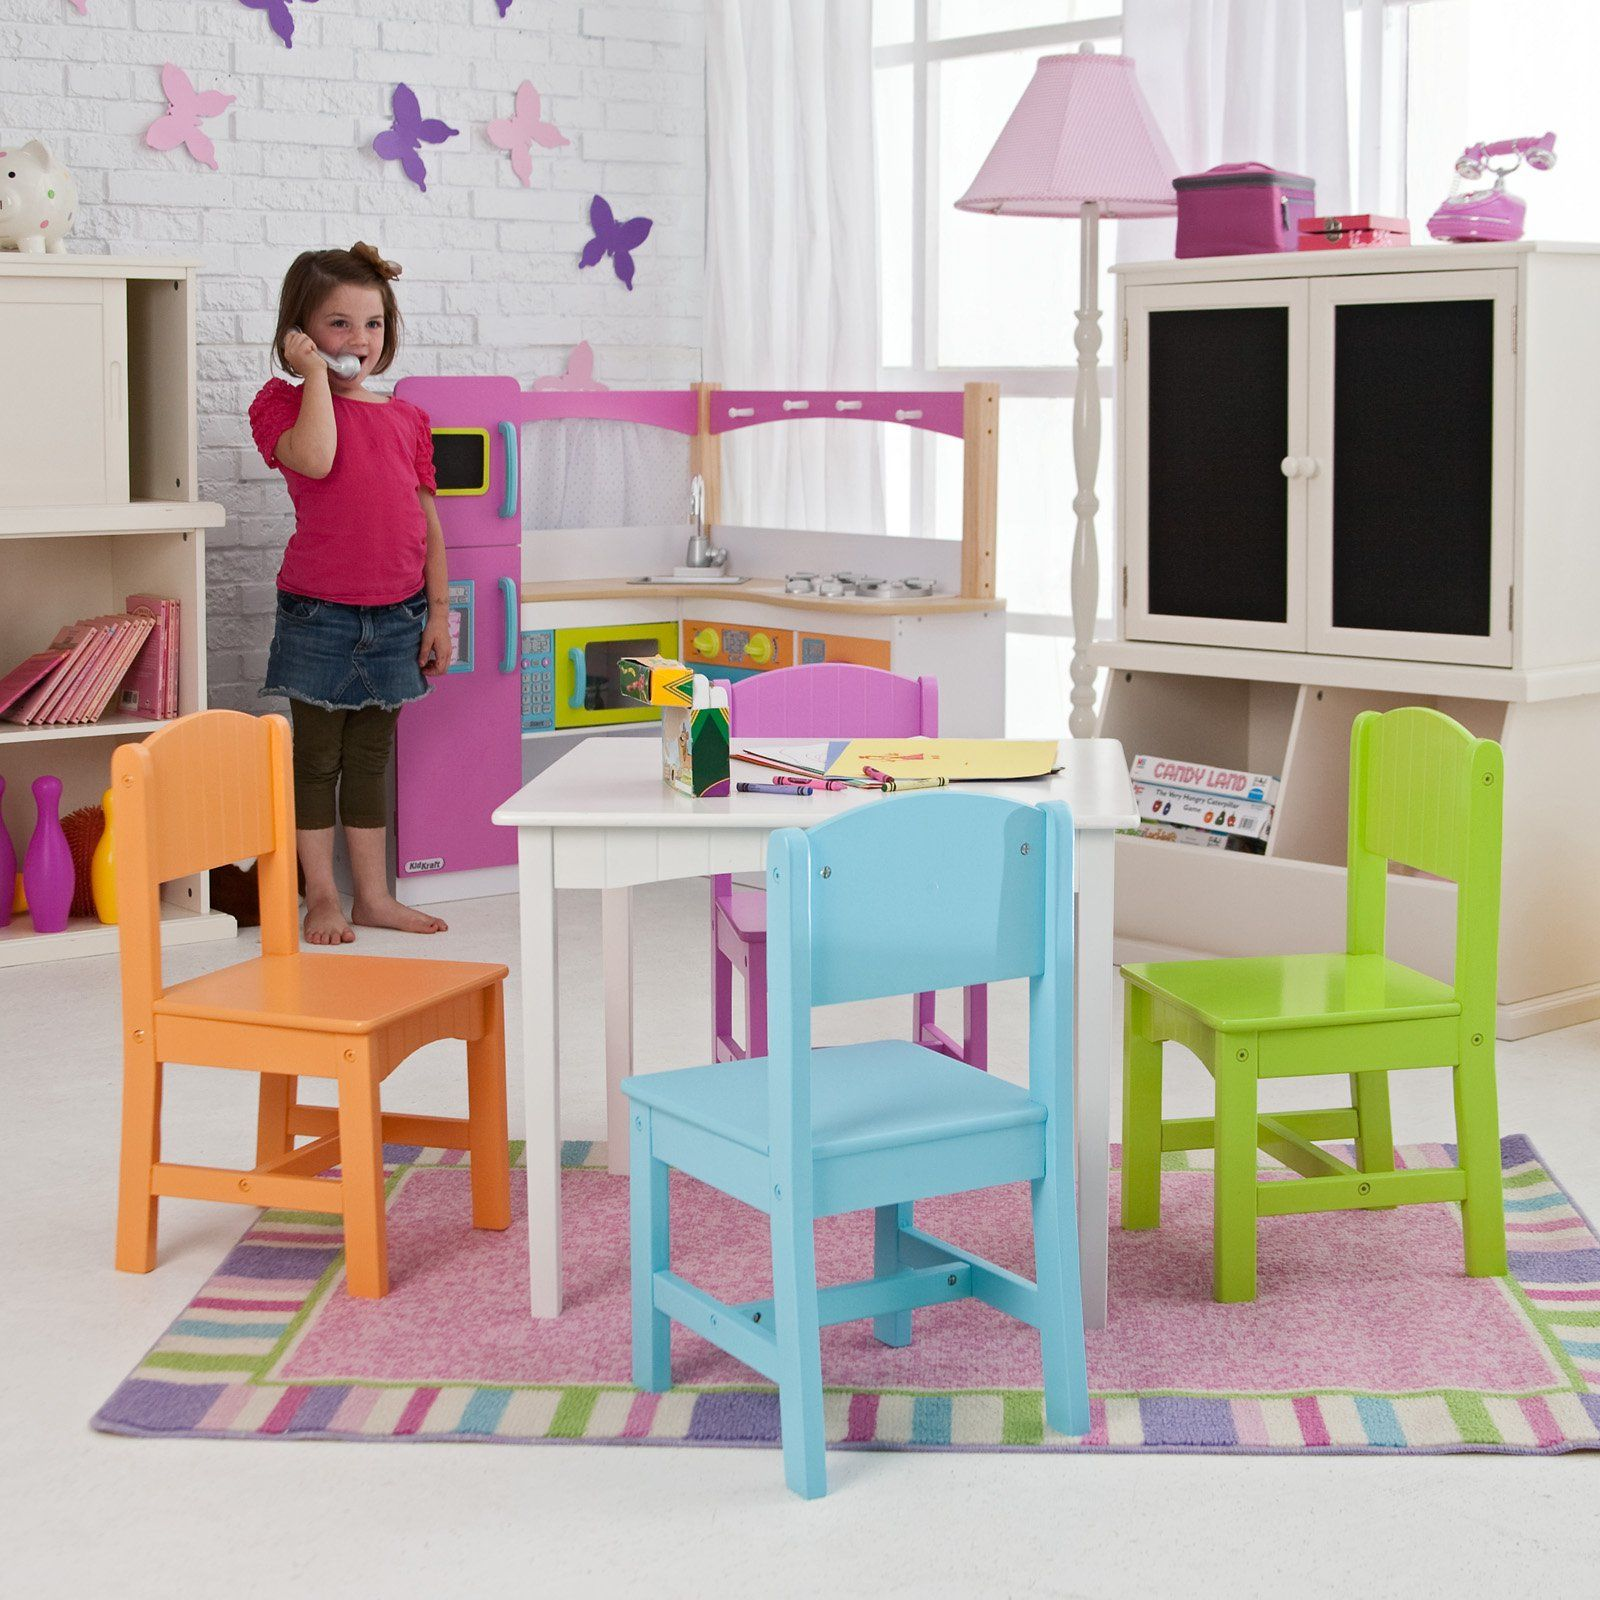 85e70fb2de2 KidKraft Nantucket Big N Bright Table and Chair Set in 2019 ...